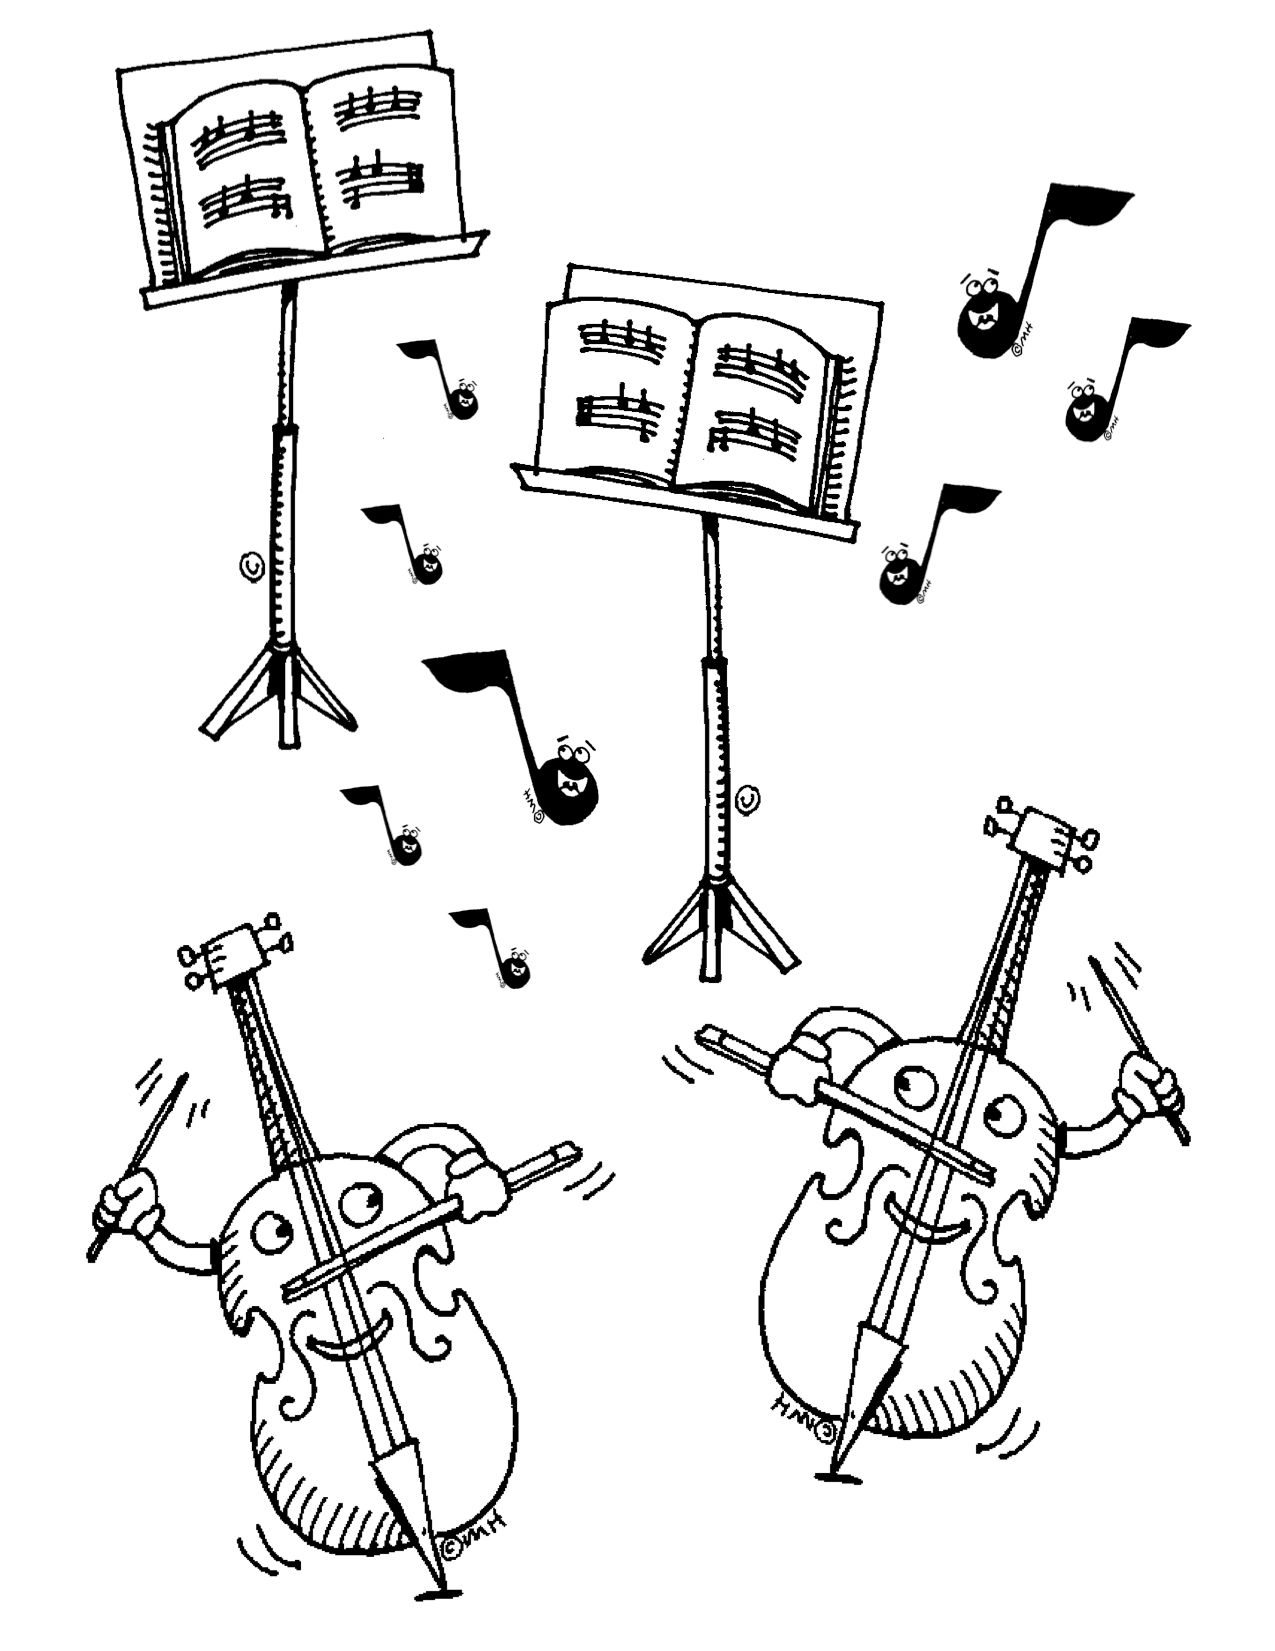 Free Violin Clip Art: Here is a coloring sheet for young students ...